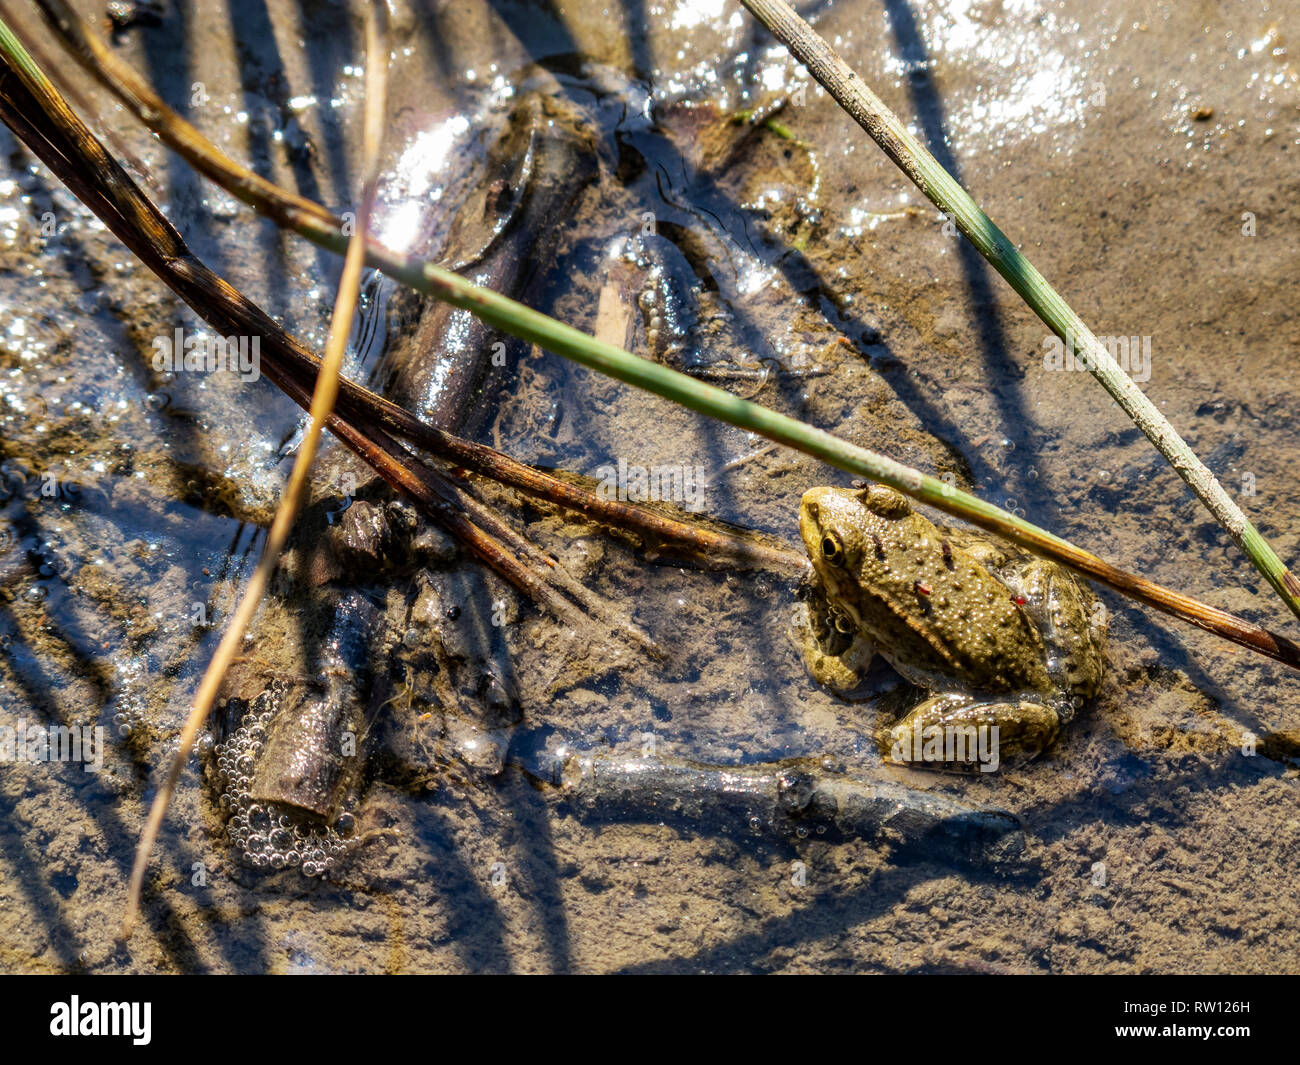 A frog standing motionless in the mud in a puddle on a riverbank with biting midge flies on it - Stock Image